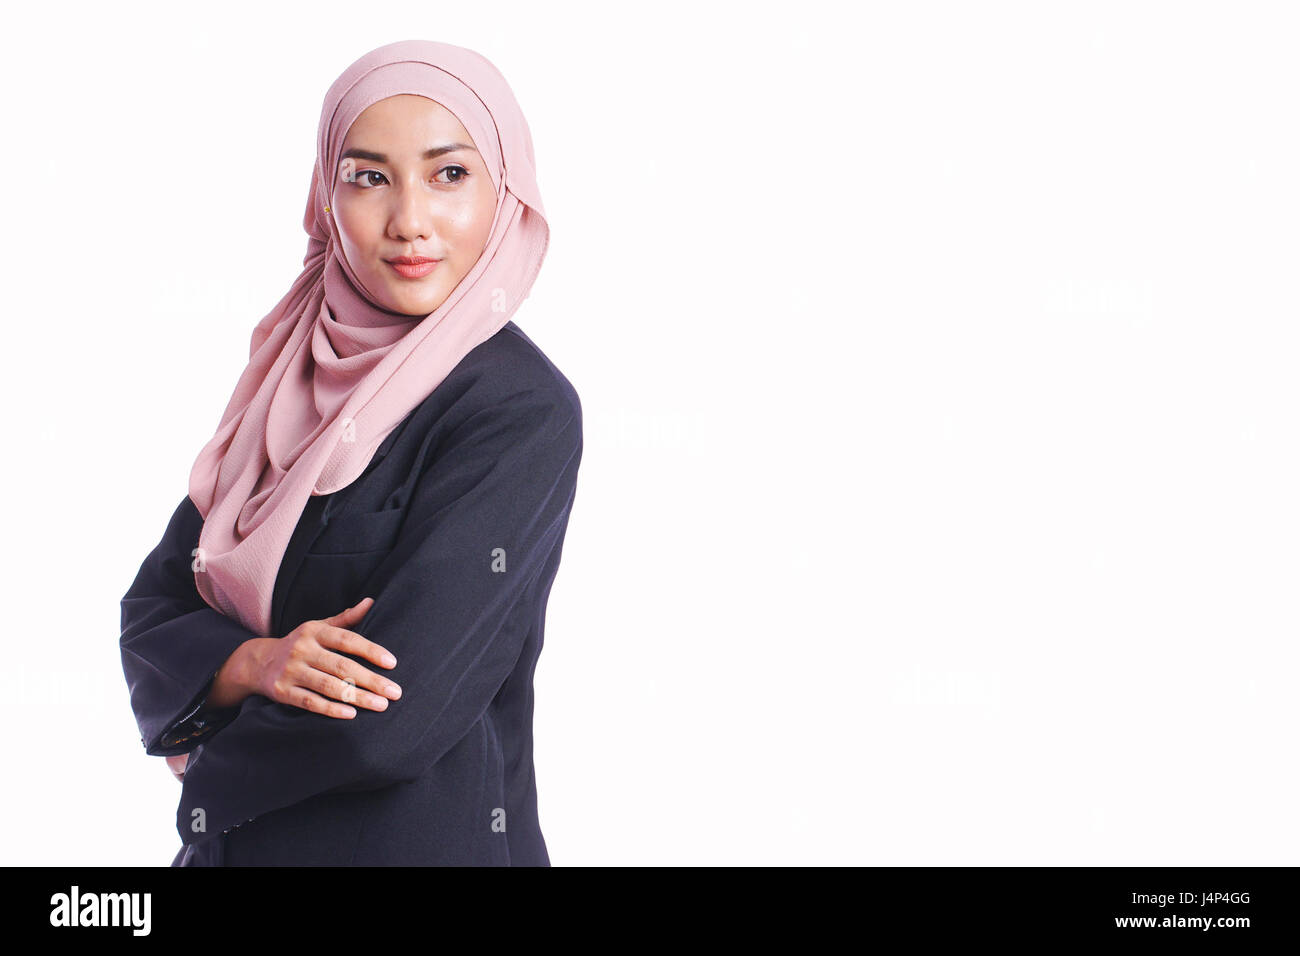 Half length portrait of business woman smile while posing with different body language isolated on white background - Stock Image